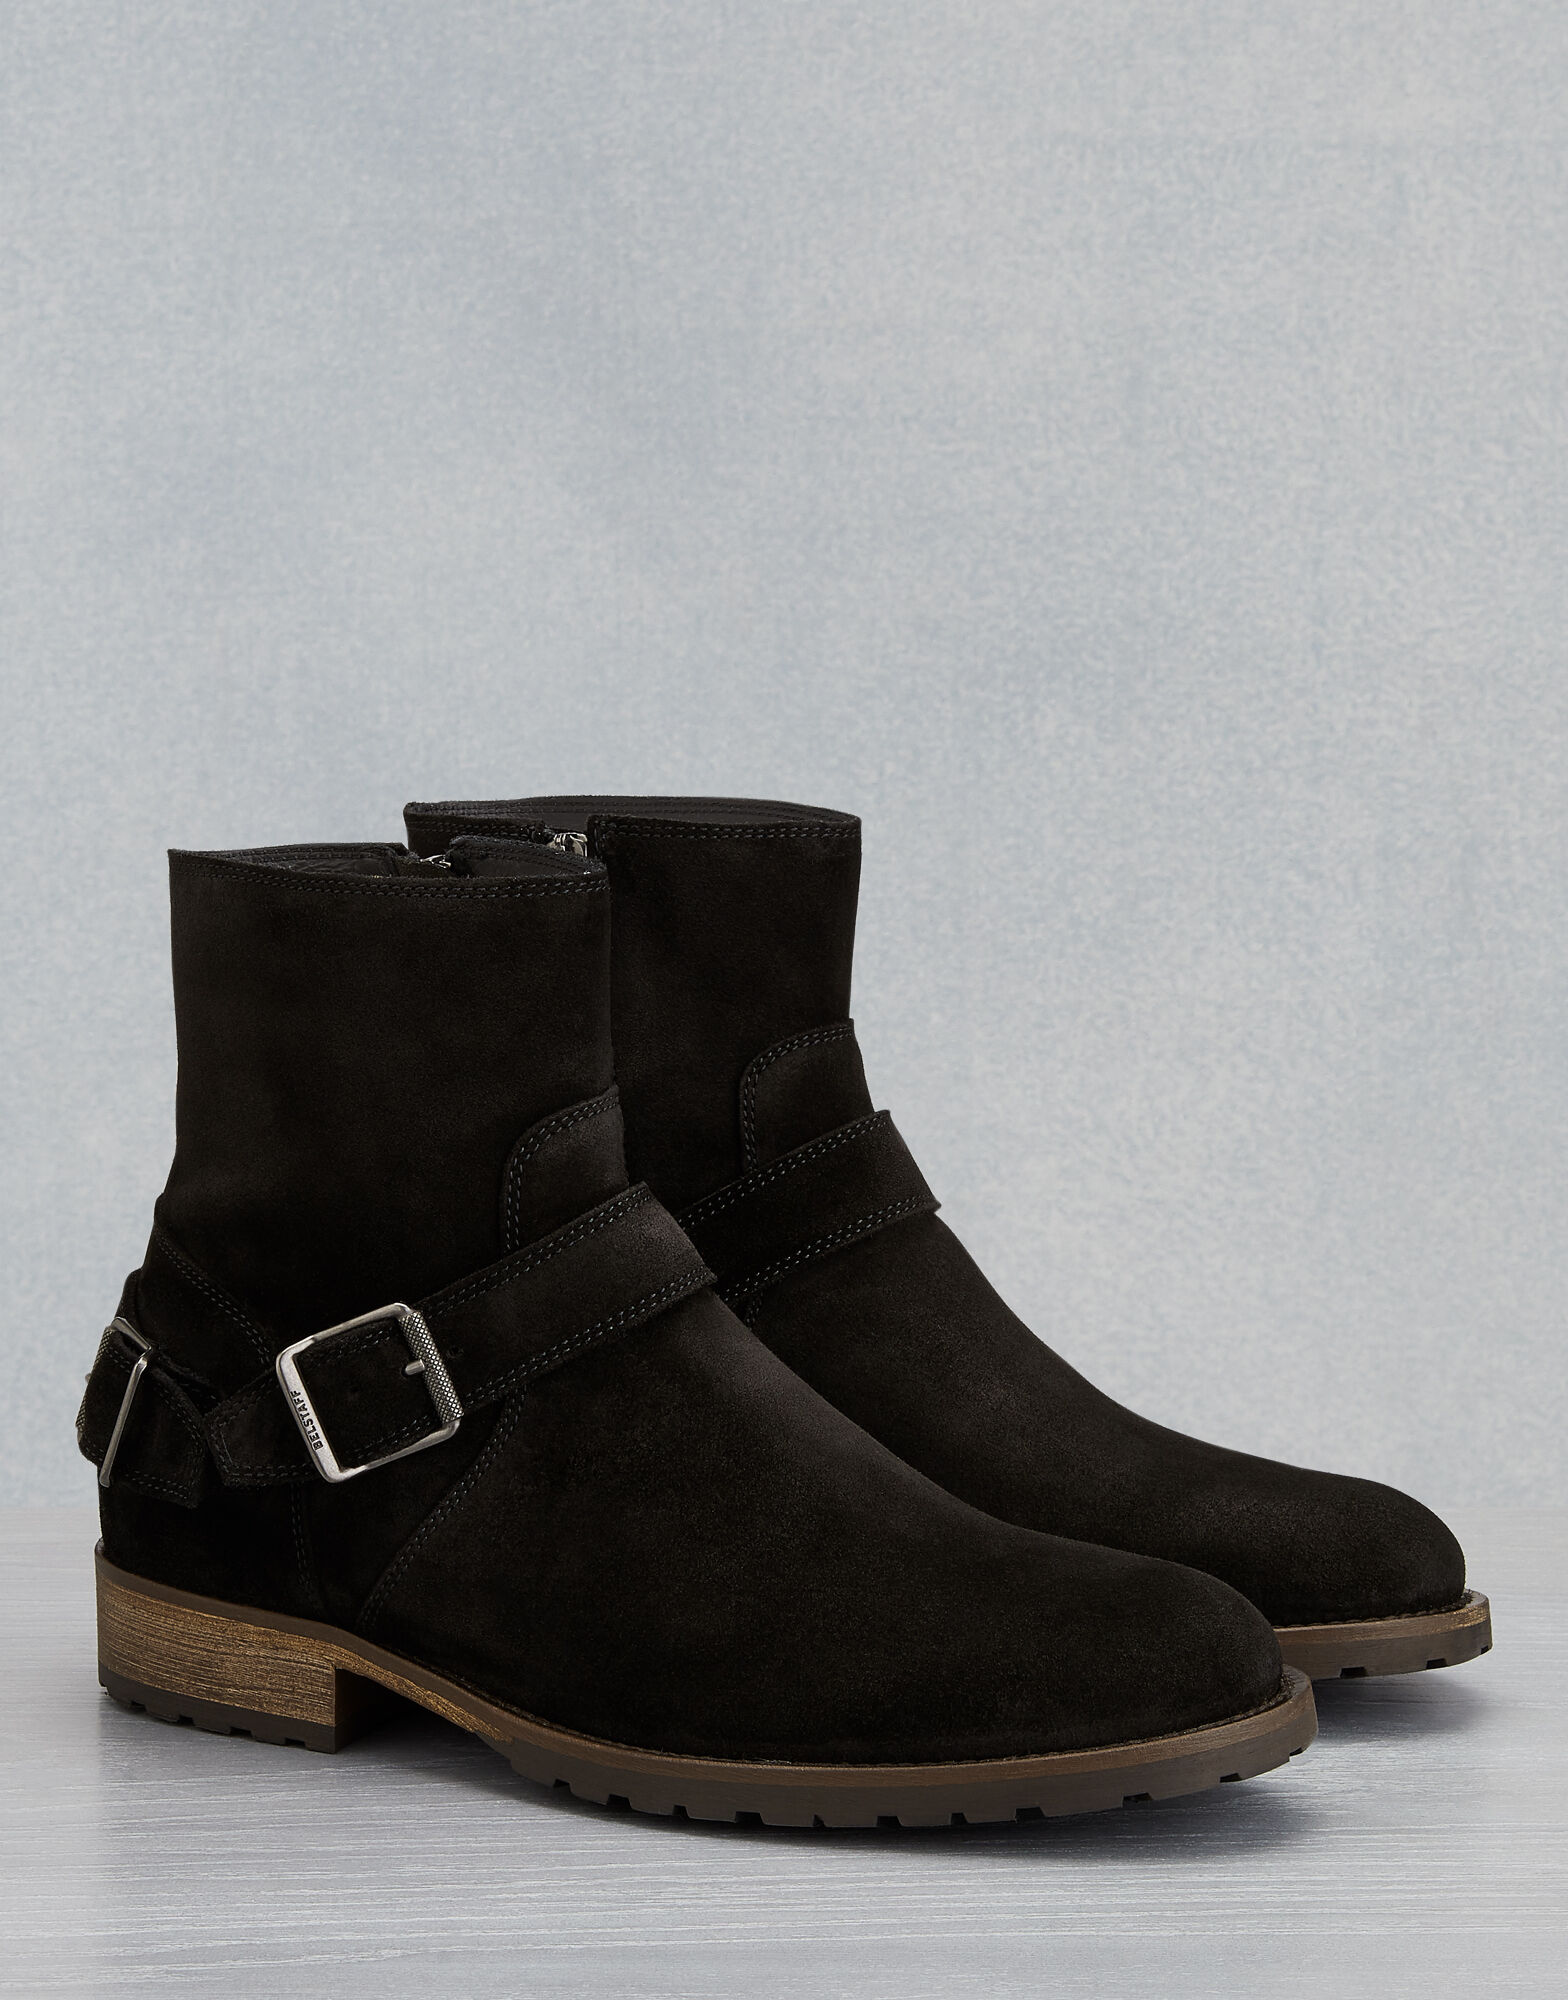 TRIALMASTER SUEDE BOOTS by Belstaff